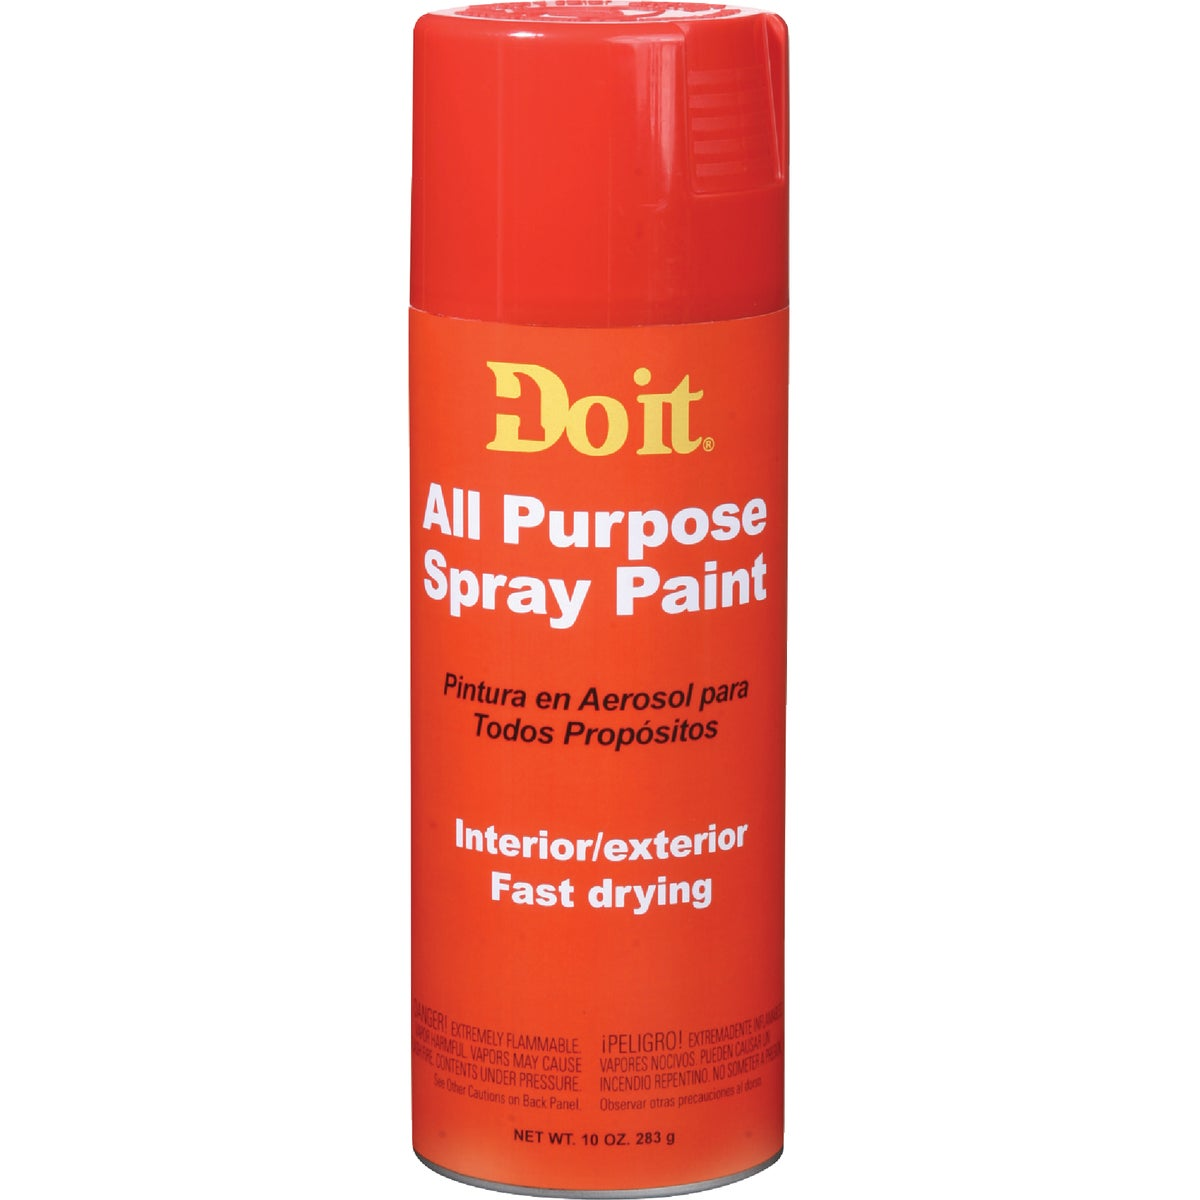 RED A/P SPRAY PAINT - 9003 by Rustoleum